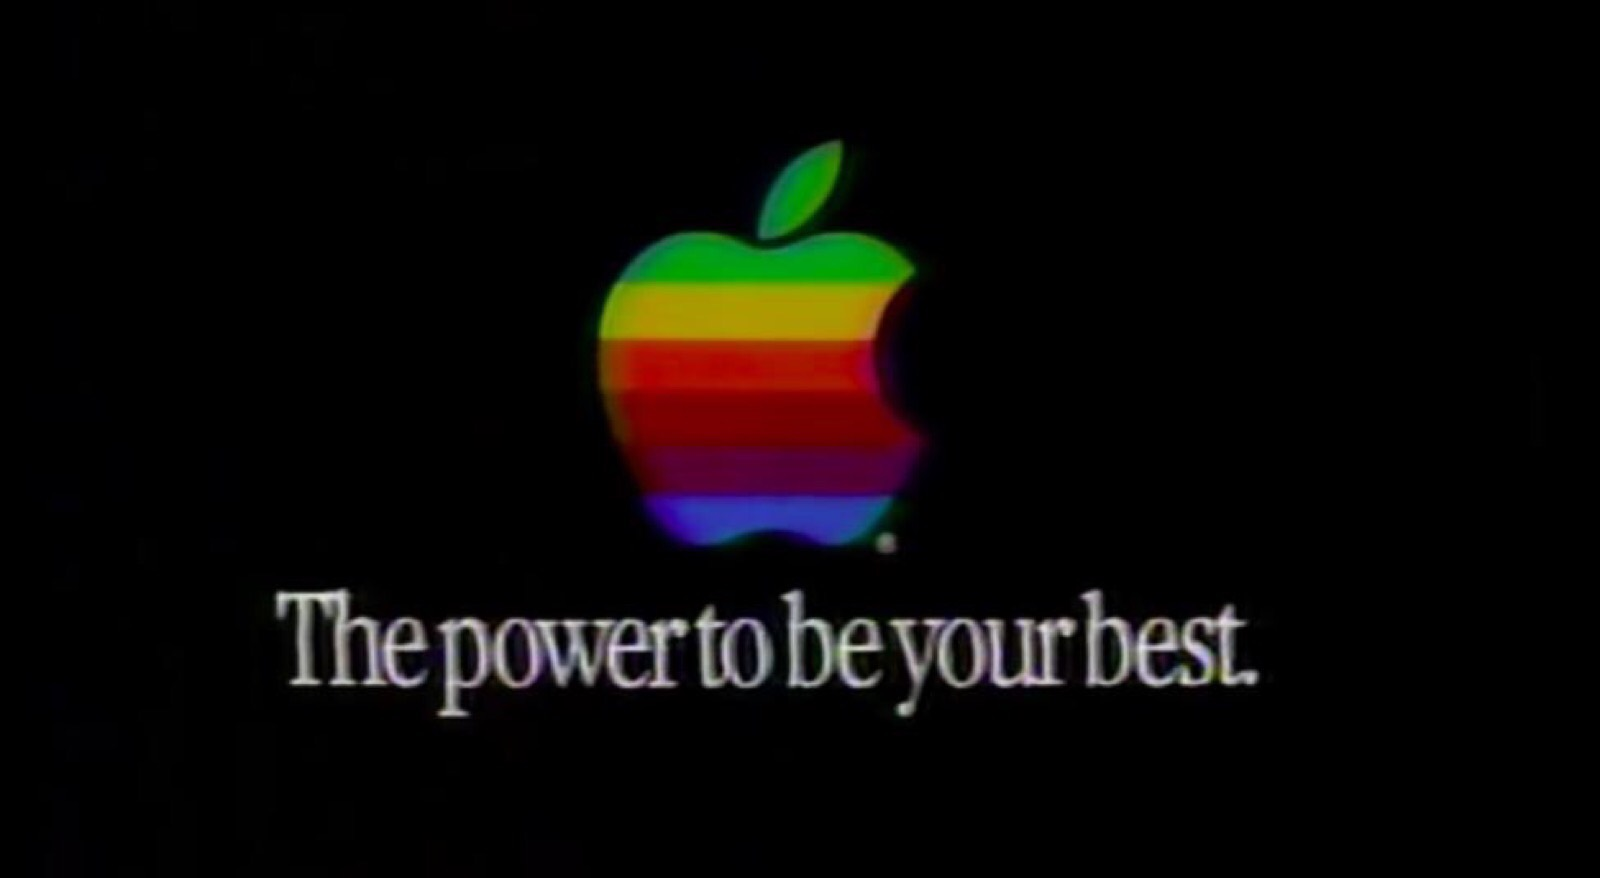 Screenshot from one of the Apple videos.